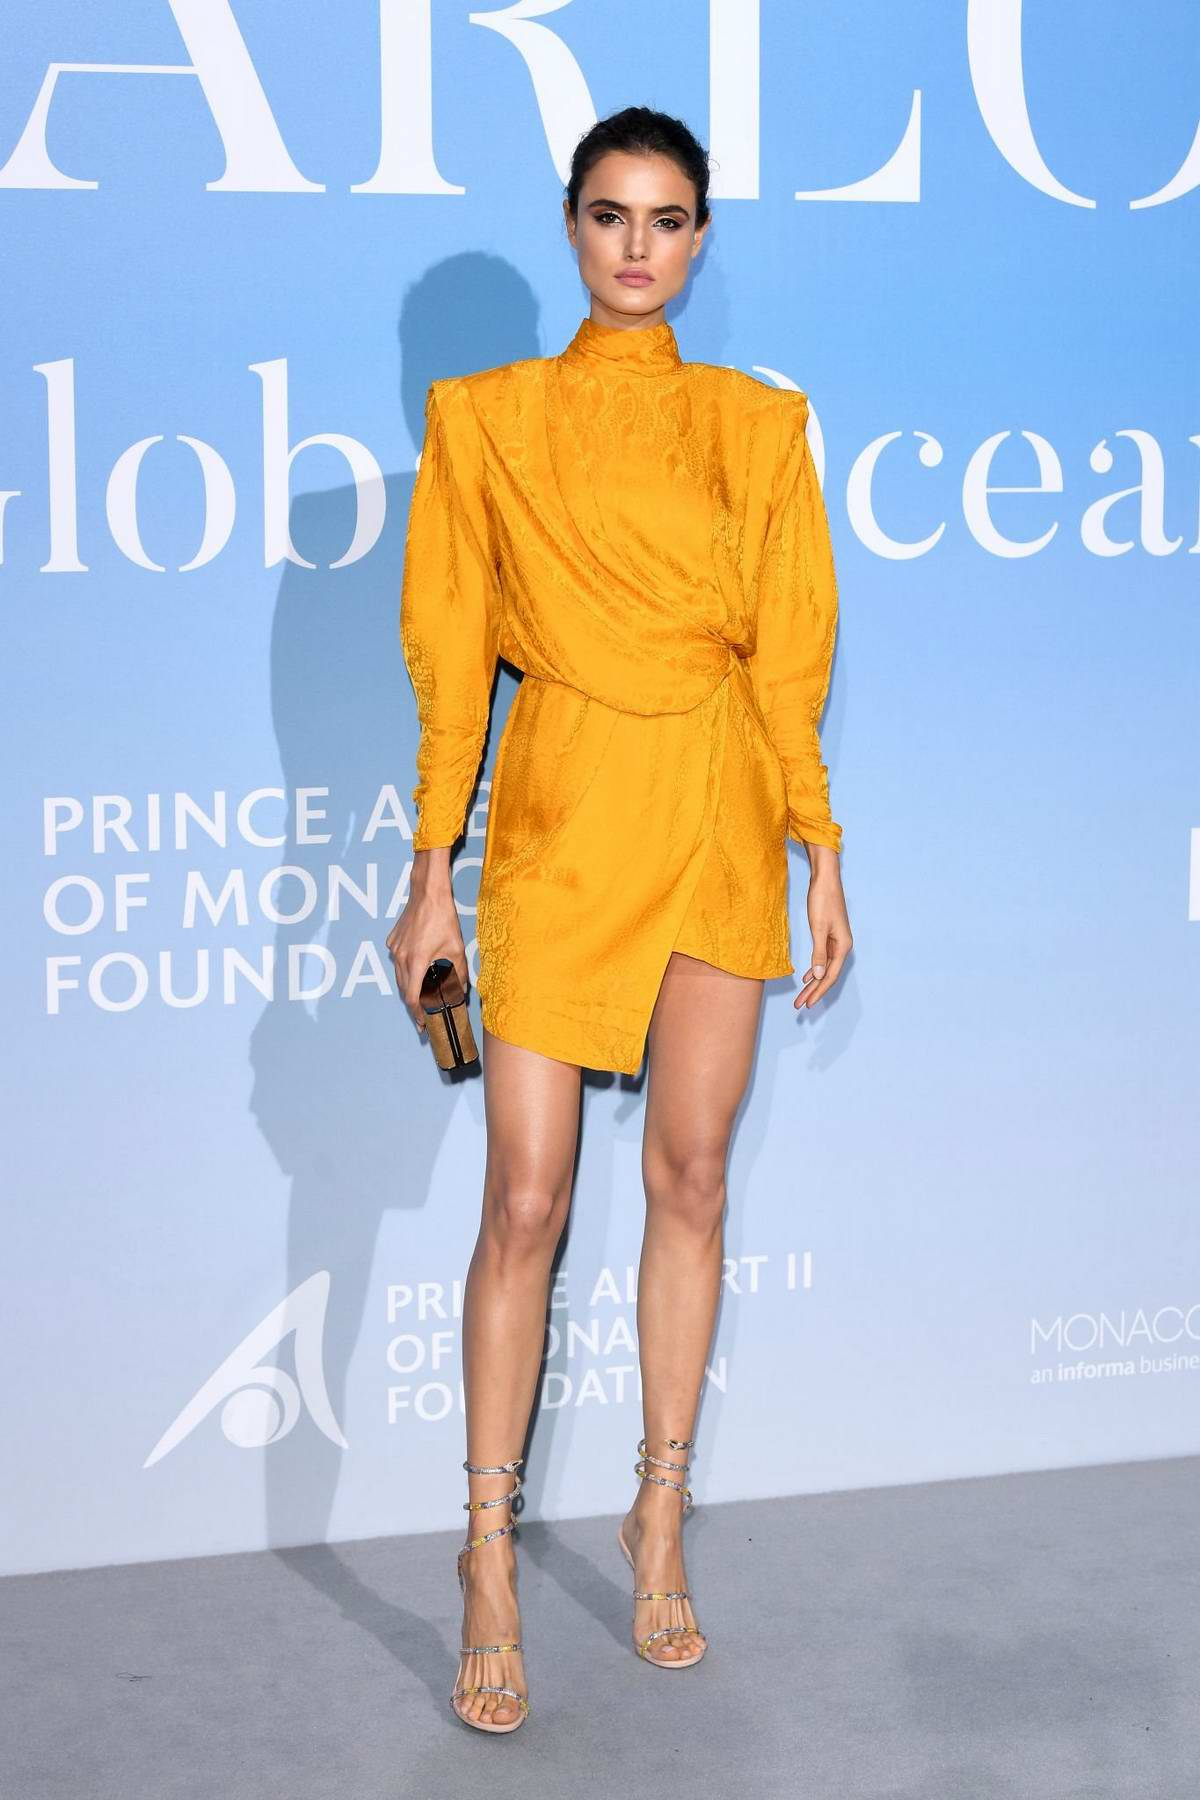 Blanca Padilla attends the Gala For The Global Ocean in Monte Carlo, Monaco